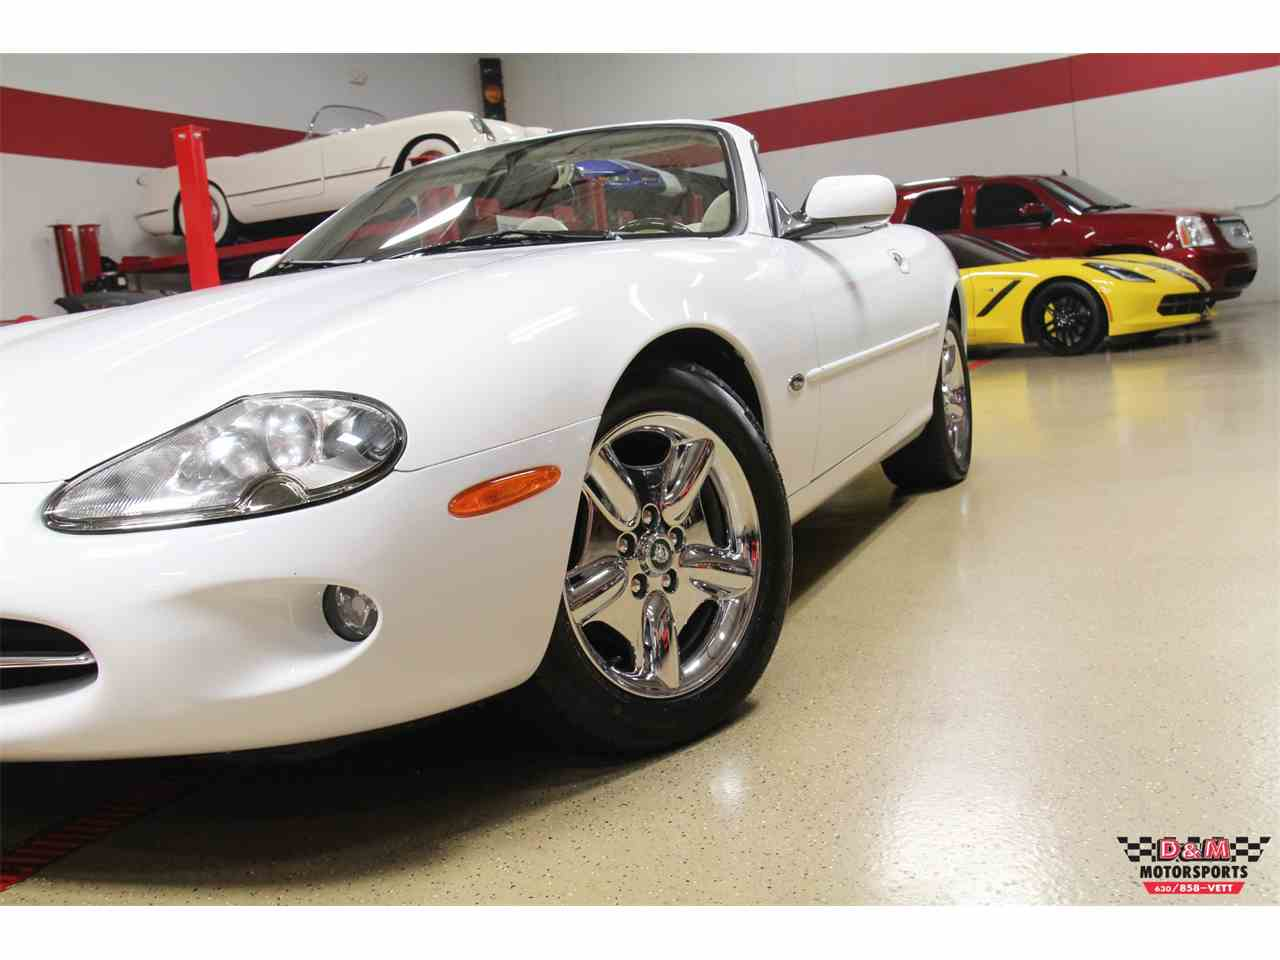 Large Picture of '98 Jaguar XK8 - $16,995.00 Offered by D & M Motorsports - MCA6